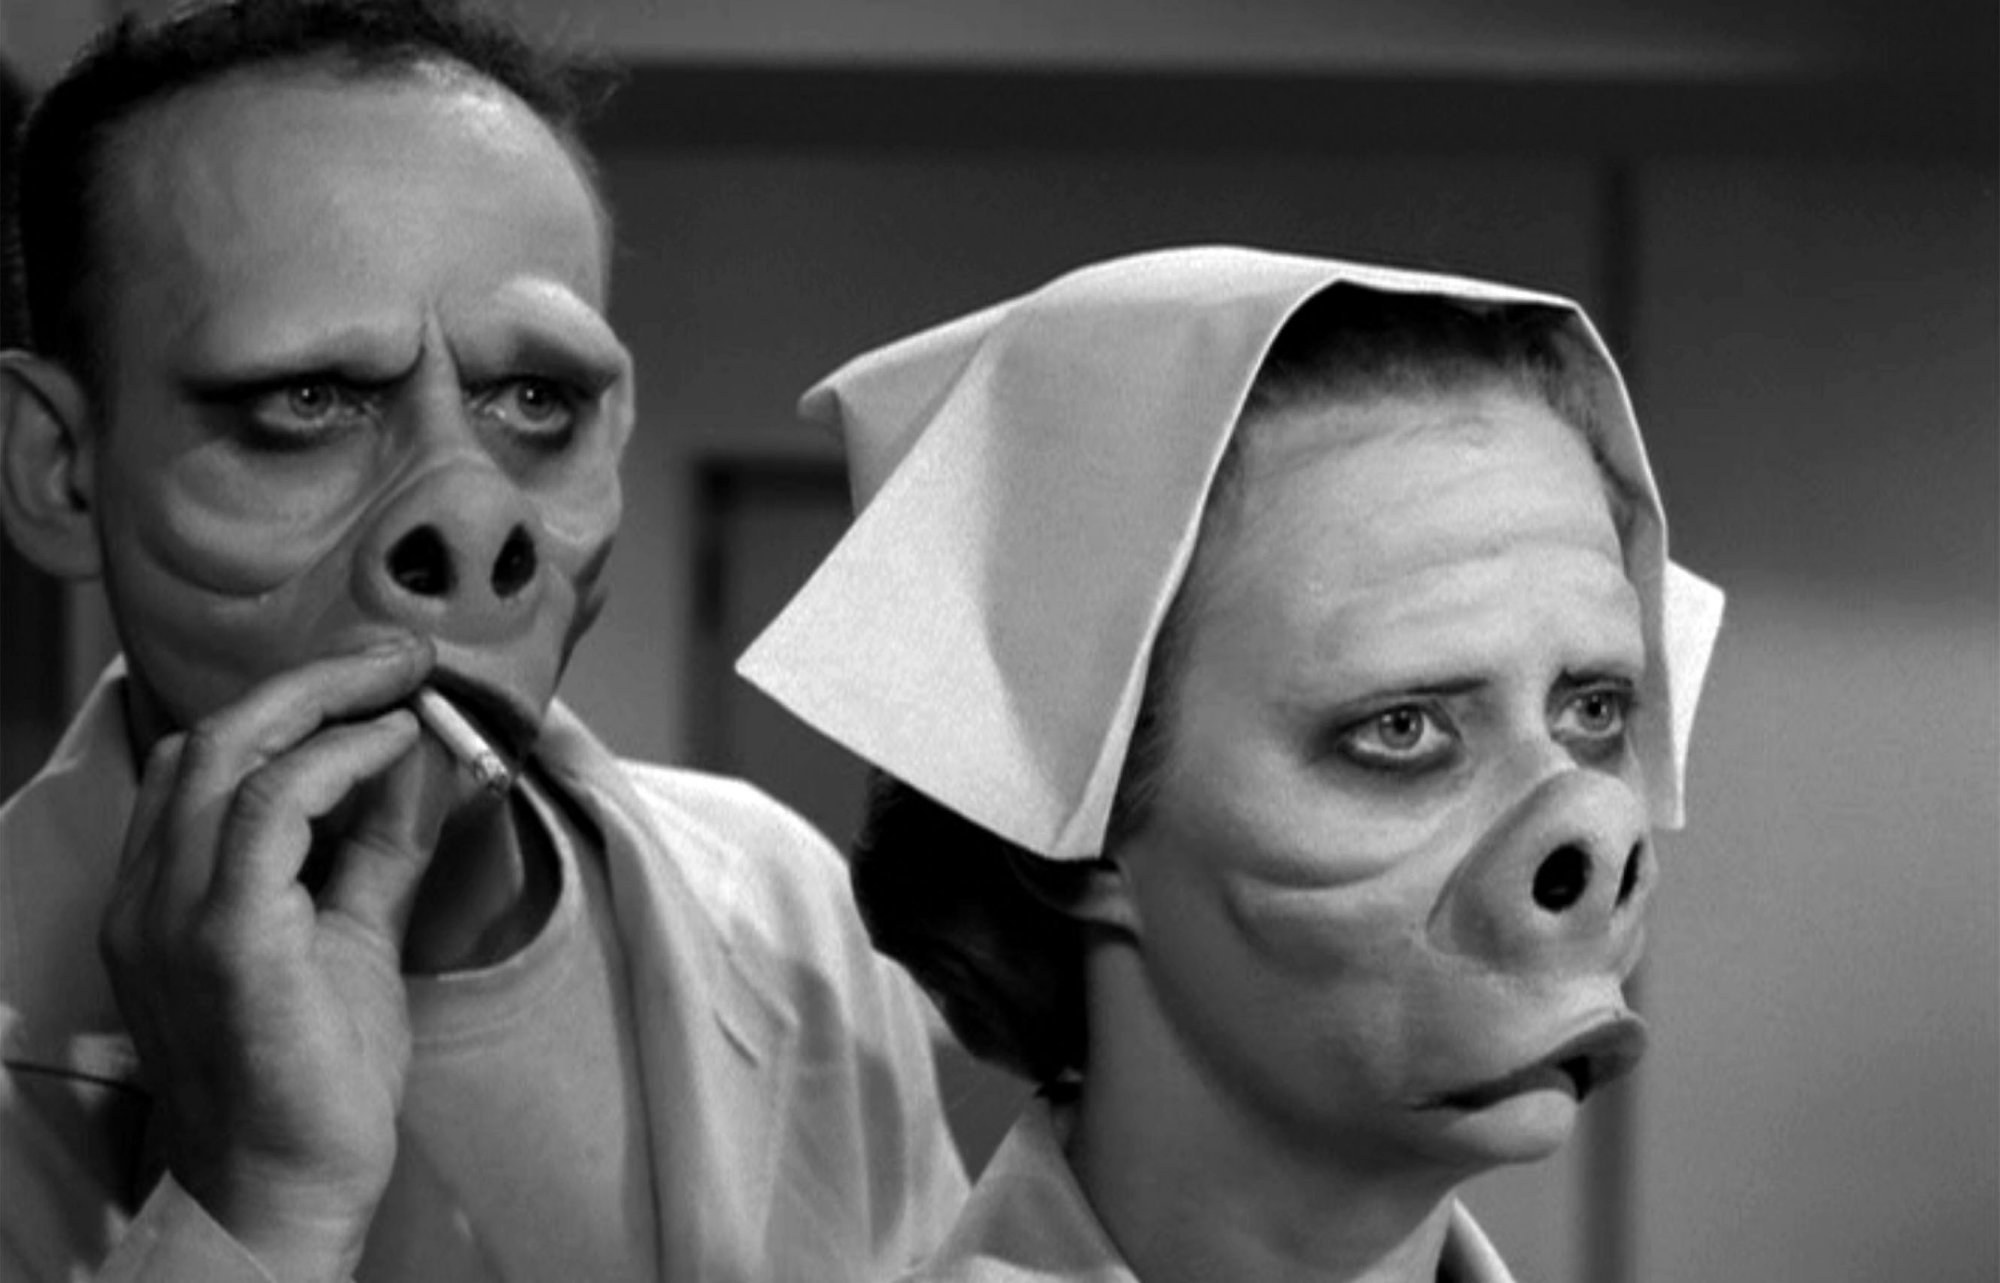 A man and a woman with pig snouts on The Twilight Zone